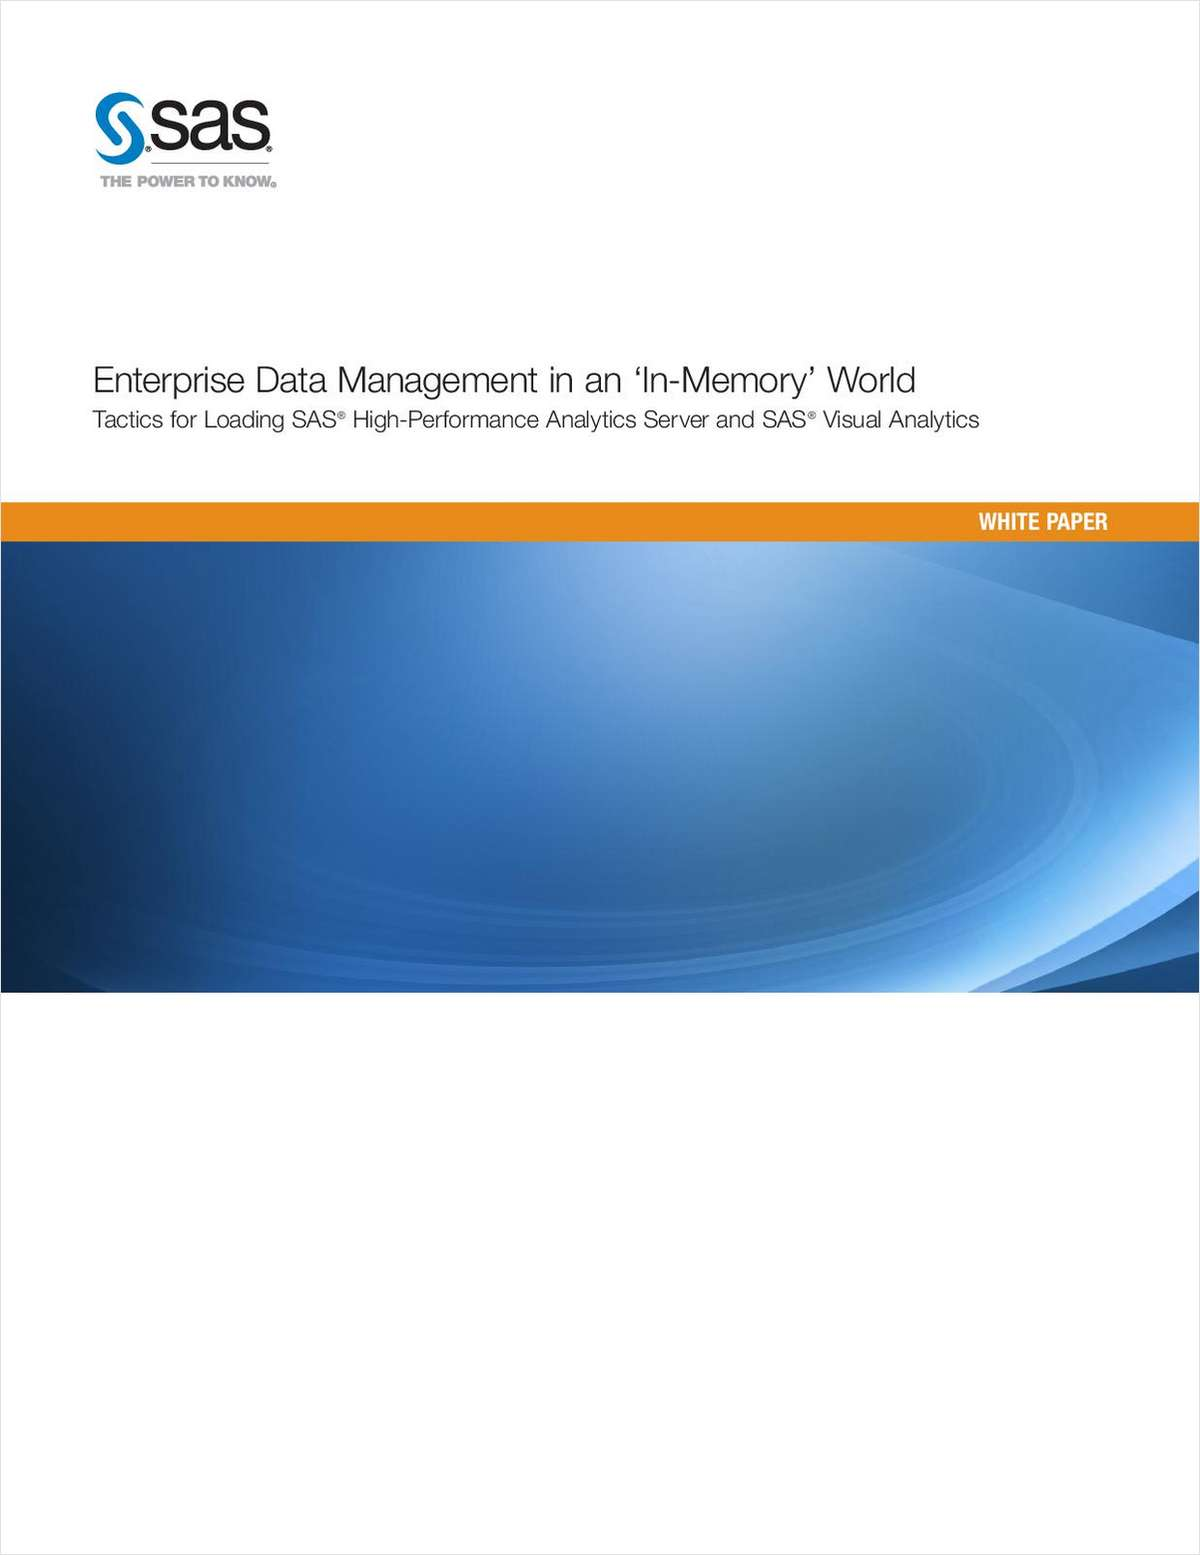 Enterprise Data Management in an 'In-Memory' World